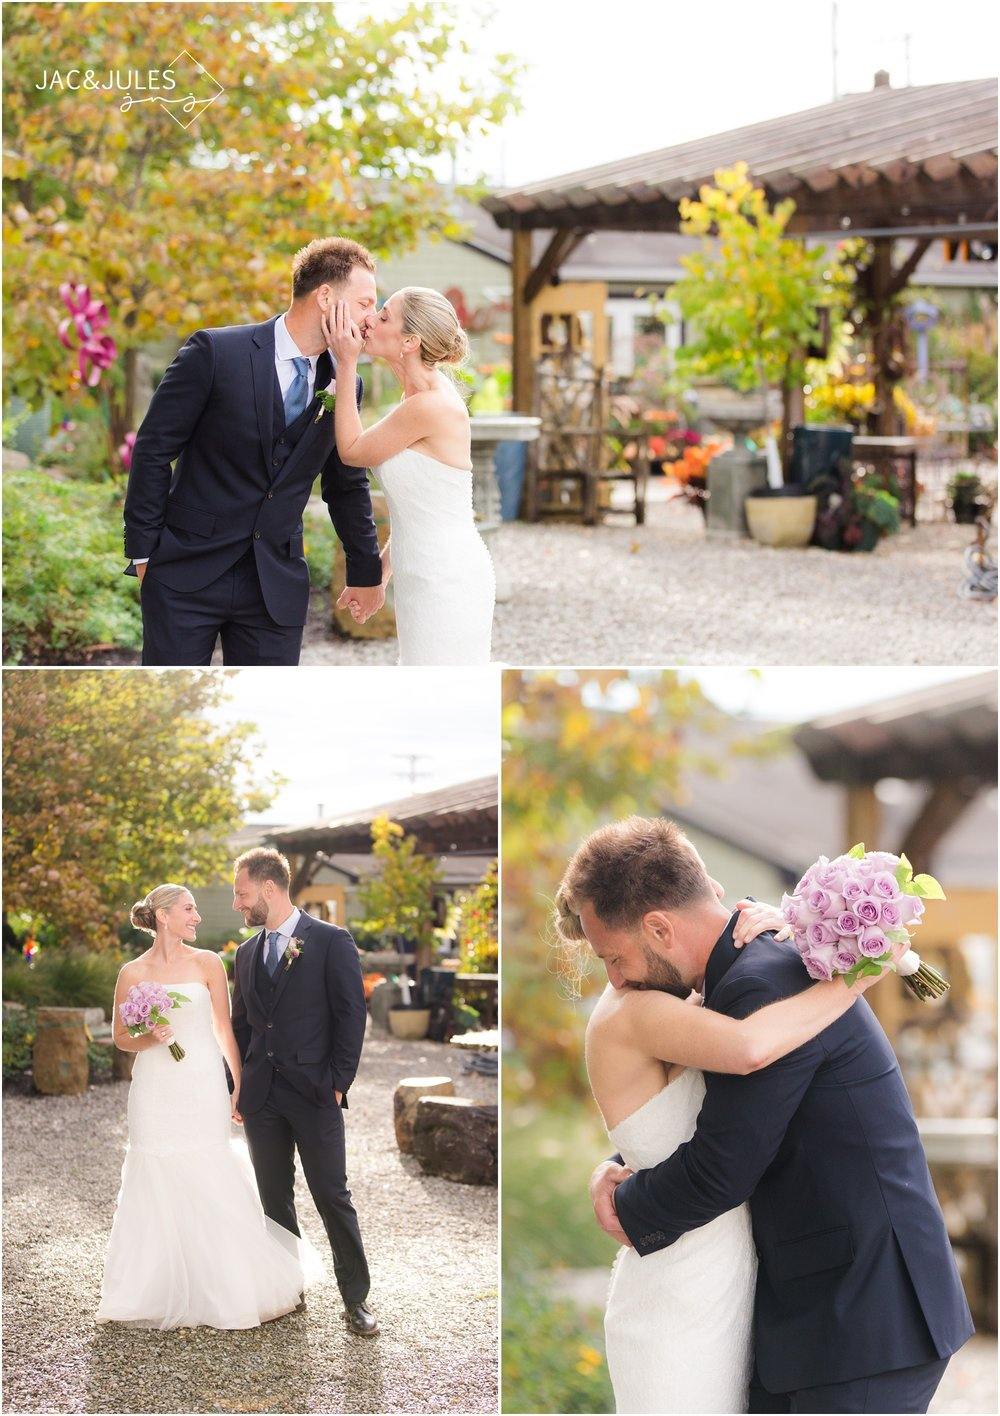 fun garden wedding photos of bride and groom in freehold, nj.